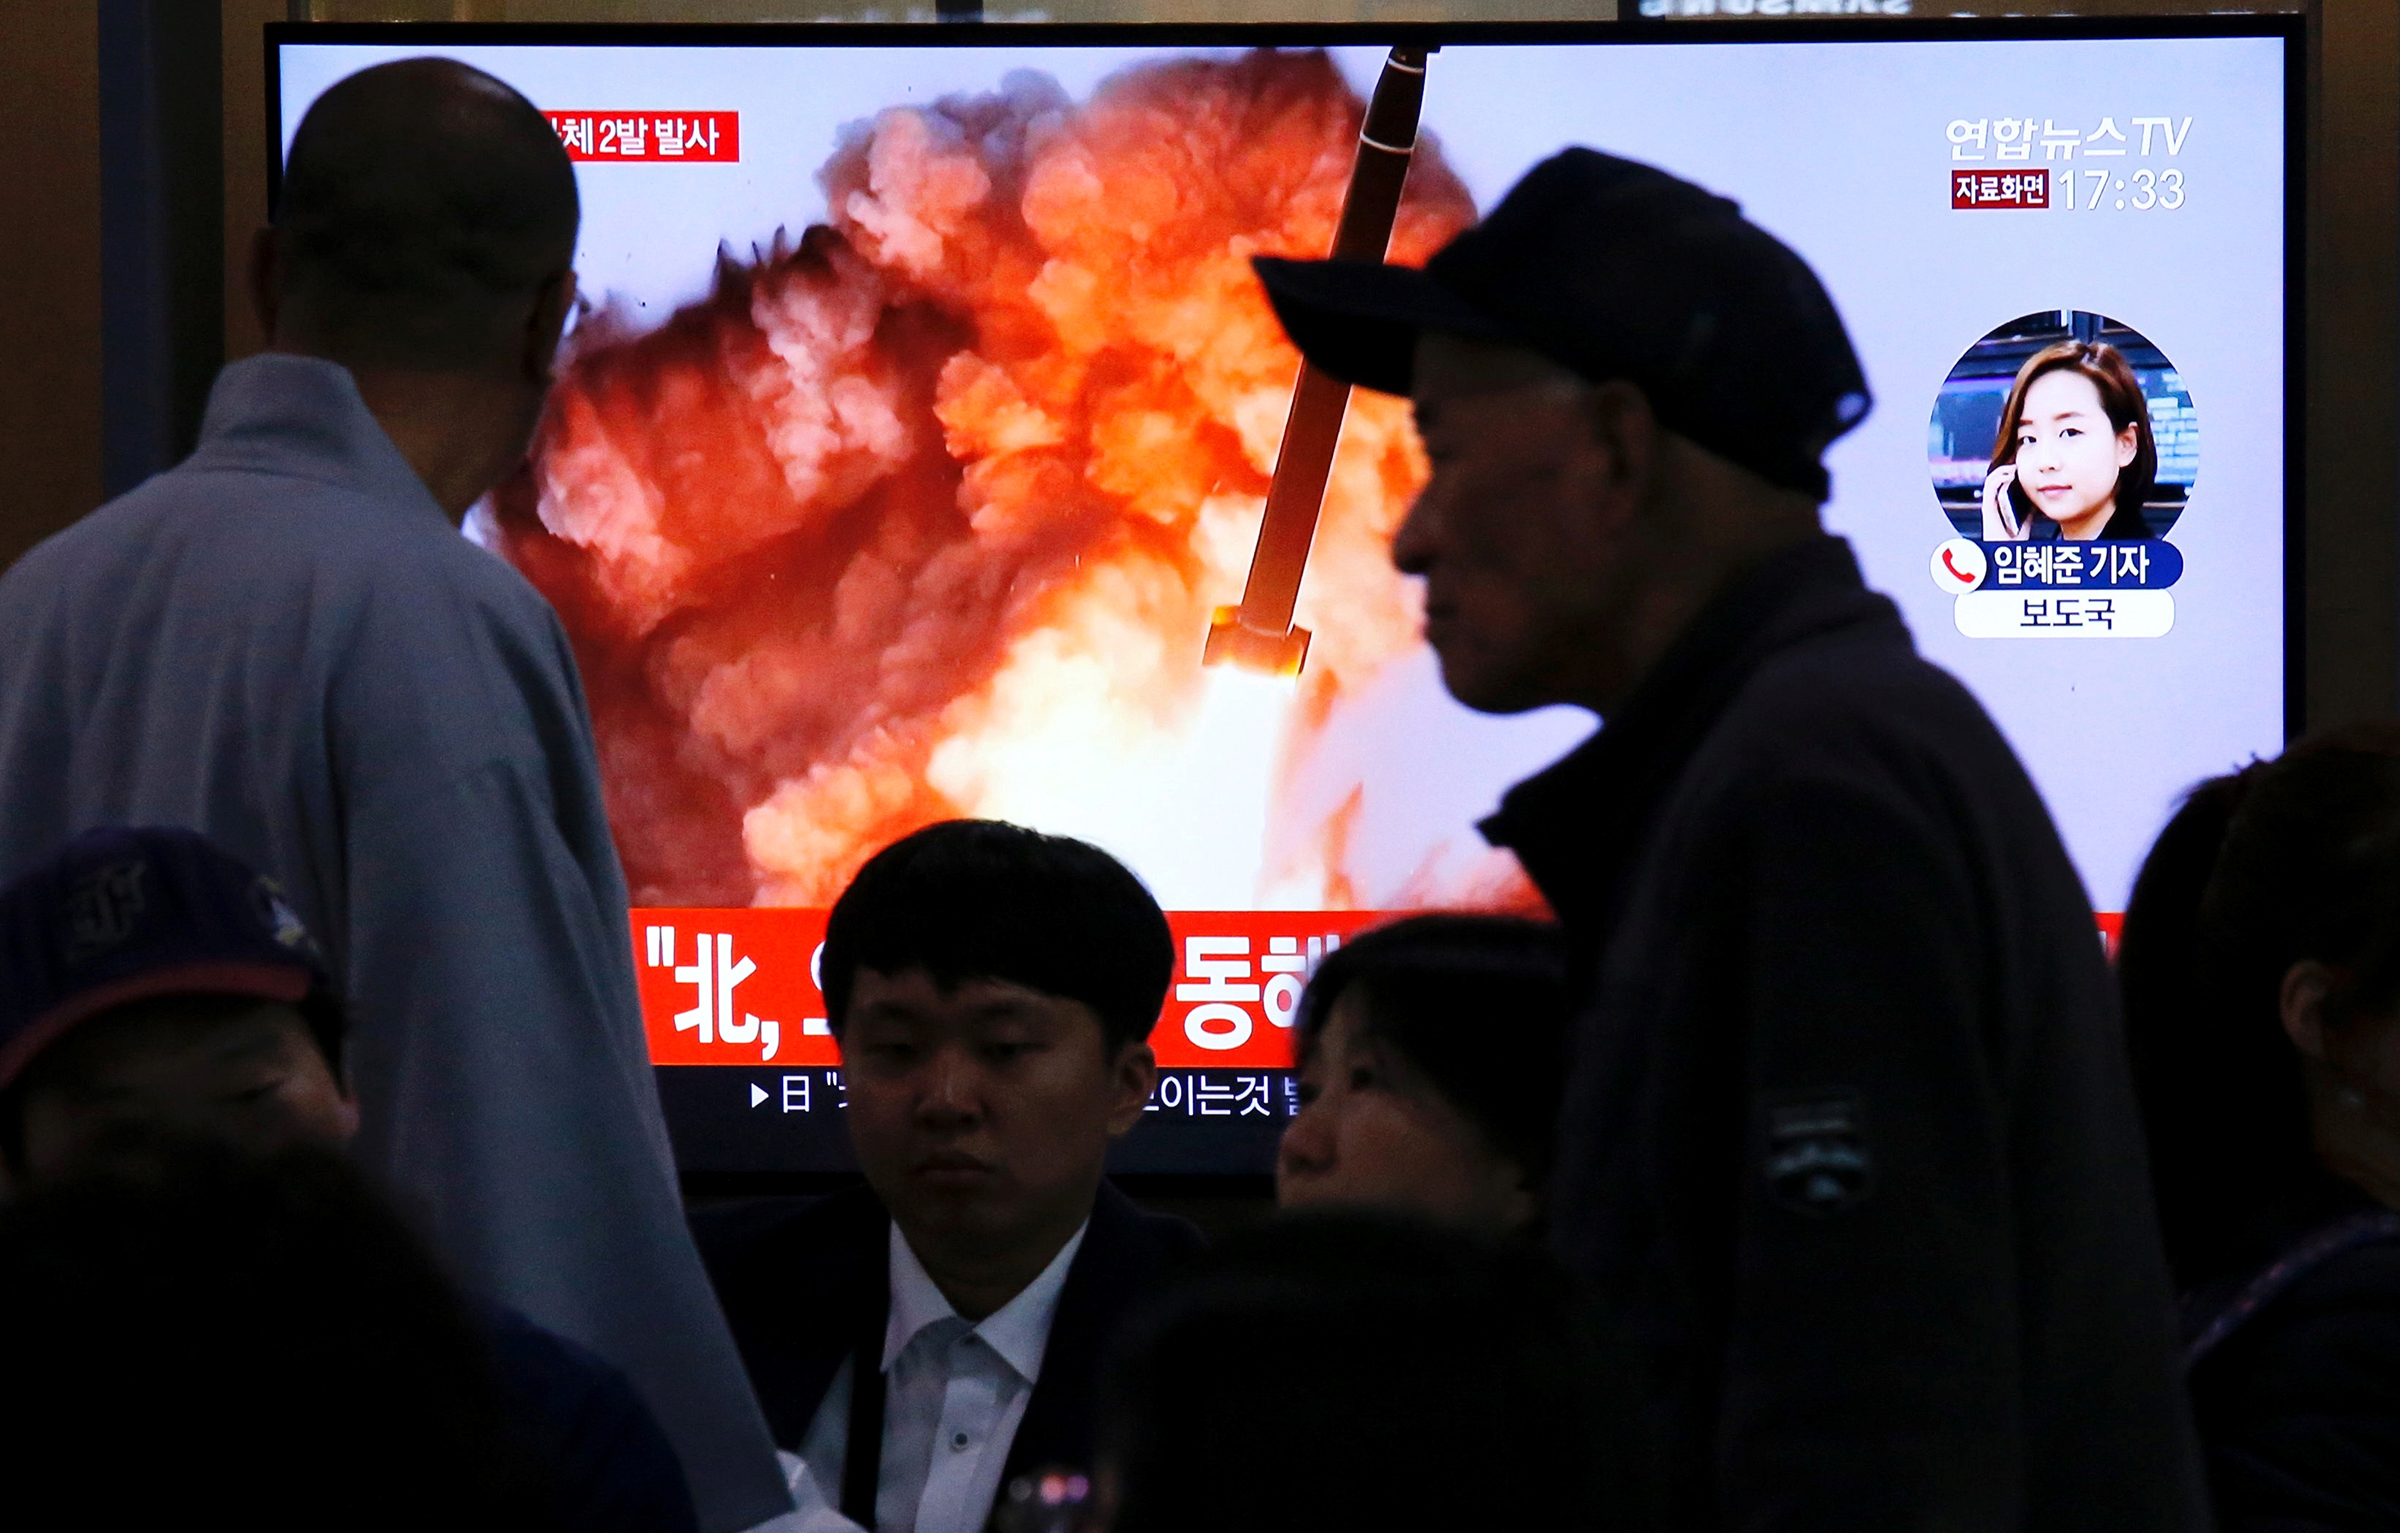 People watch a TV broadcast showing a file footage for a news report on North Korea firing two projectiles—possibly missiles—into the sea between the Korean peninsula and Japan, in Seoul on Oct. 31, 2019